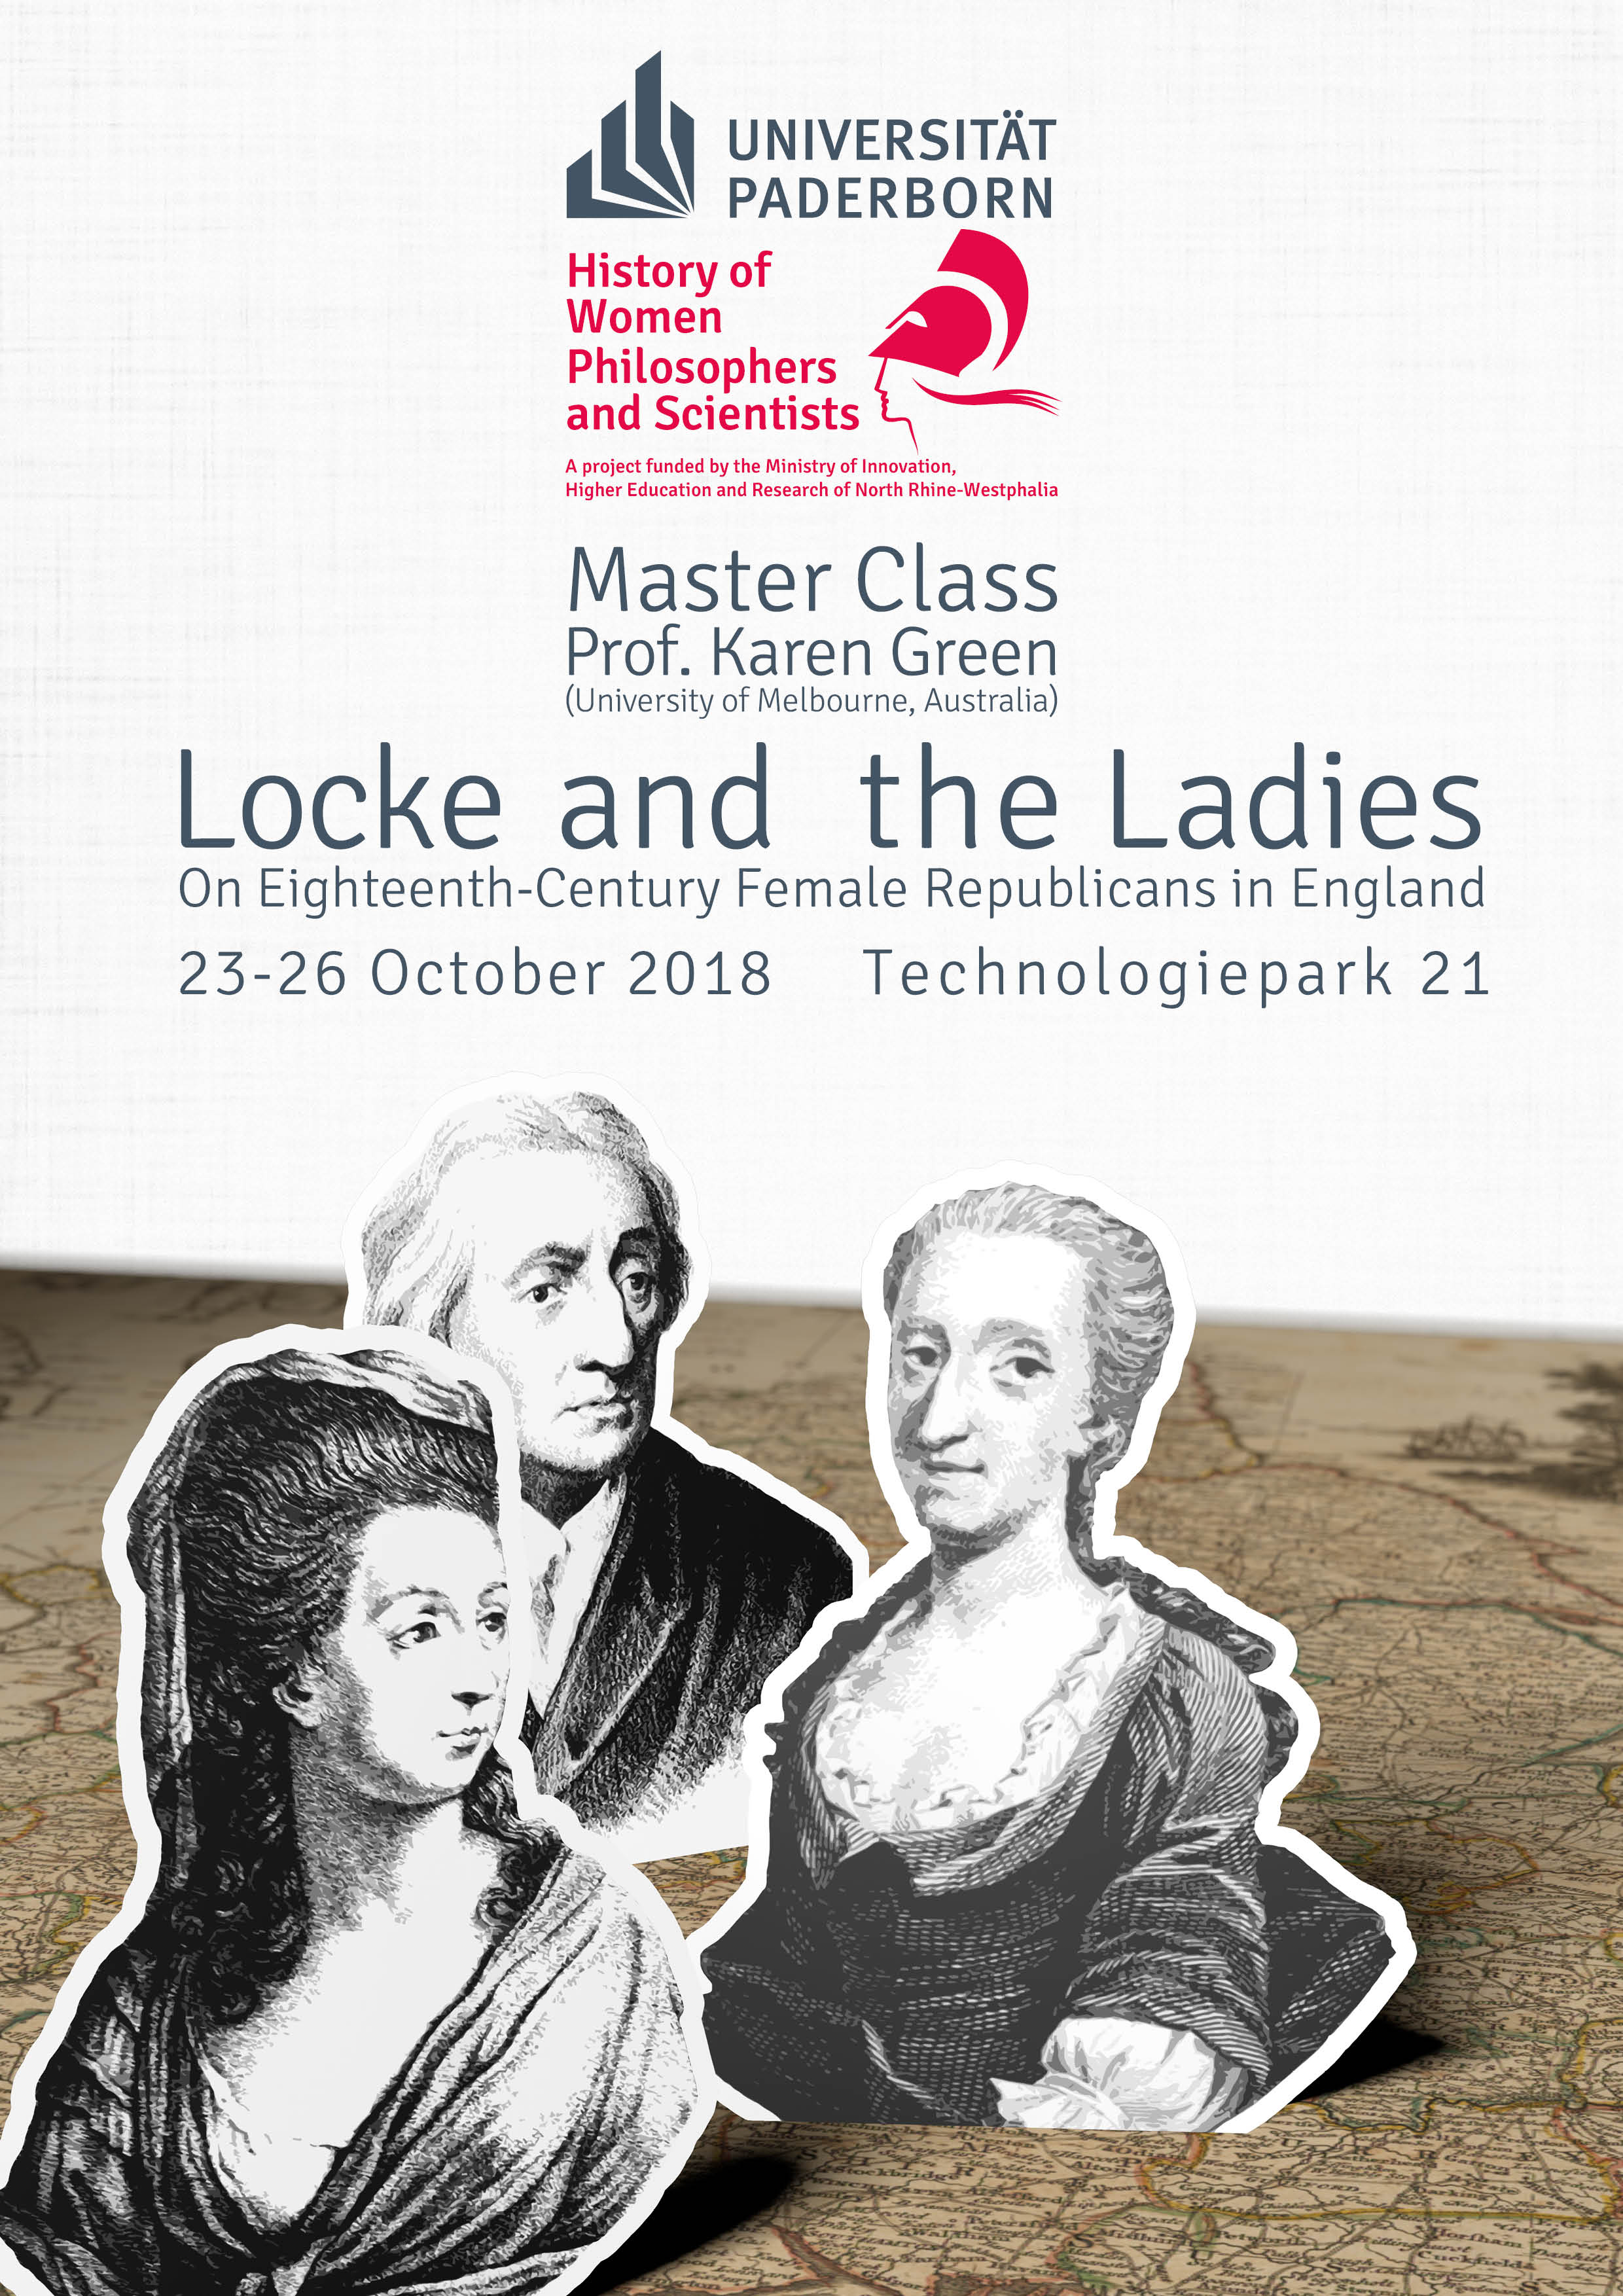 Locke and the Ladies. On Eighteenth-Century Female Republicans in England